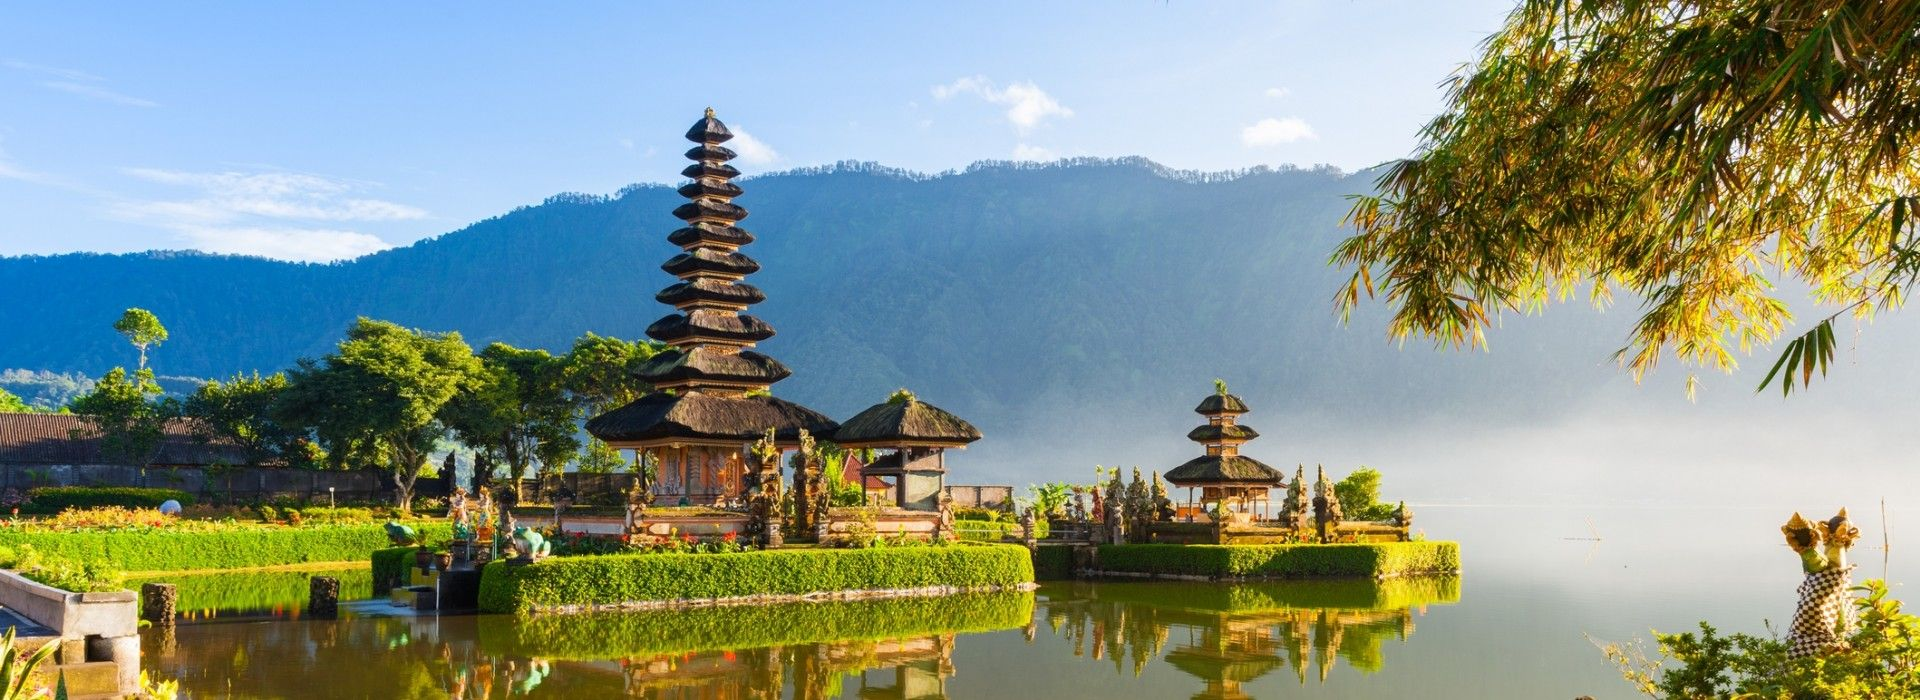 Countryside and village visits Tours in Medan